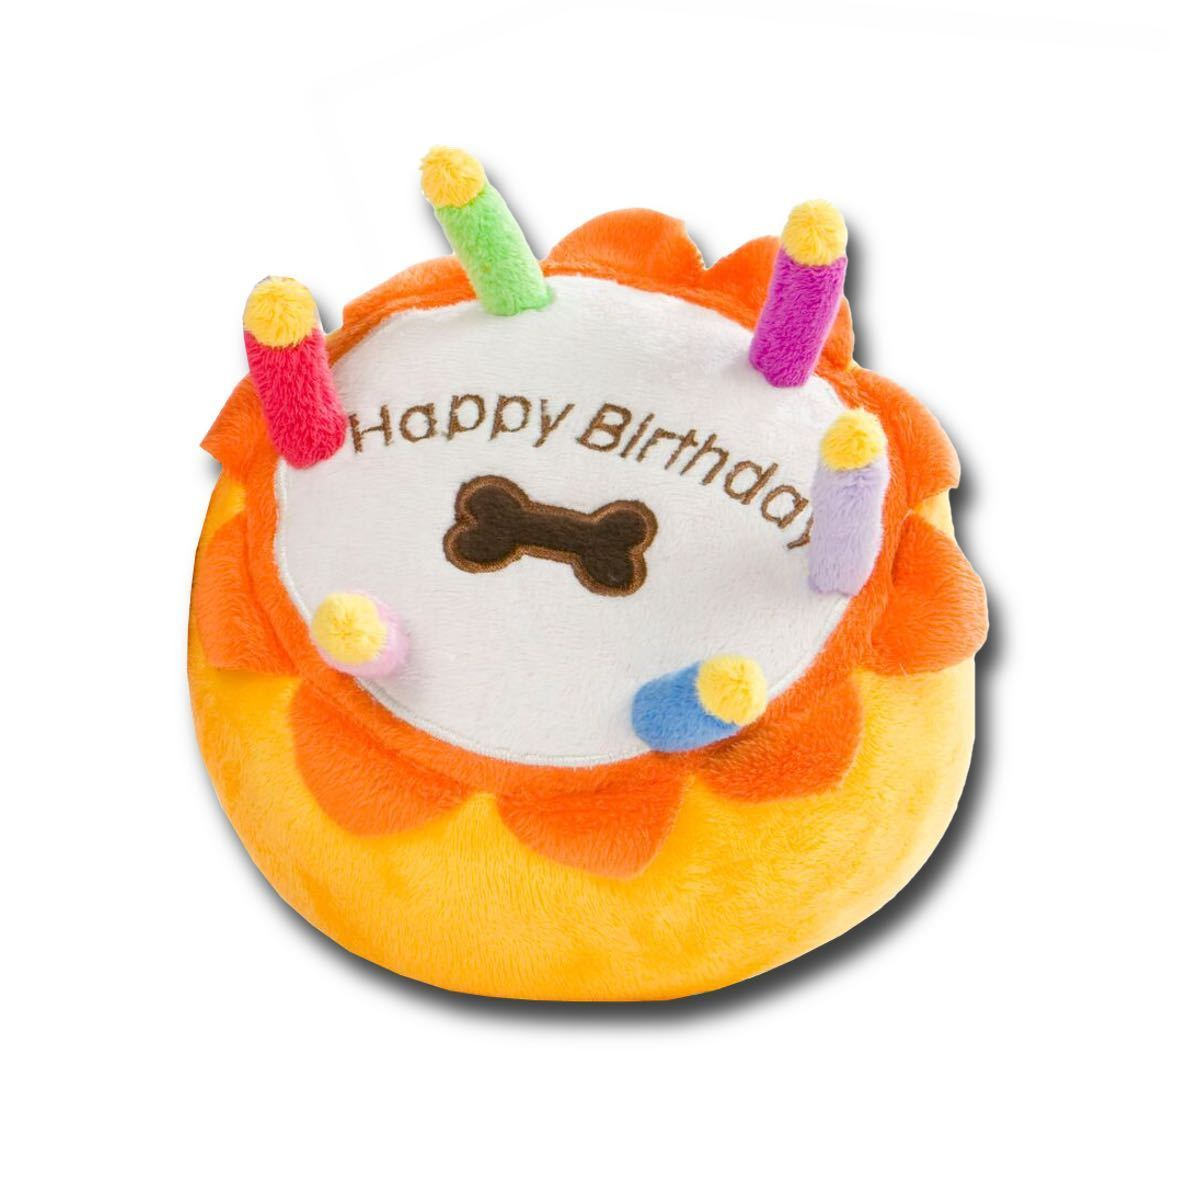 House Of Paws Plush Birthday Cake 3843120955426 1200x1200v1539736287